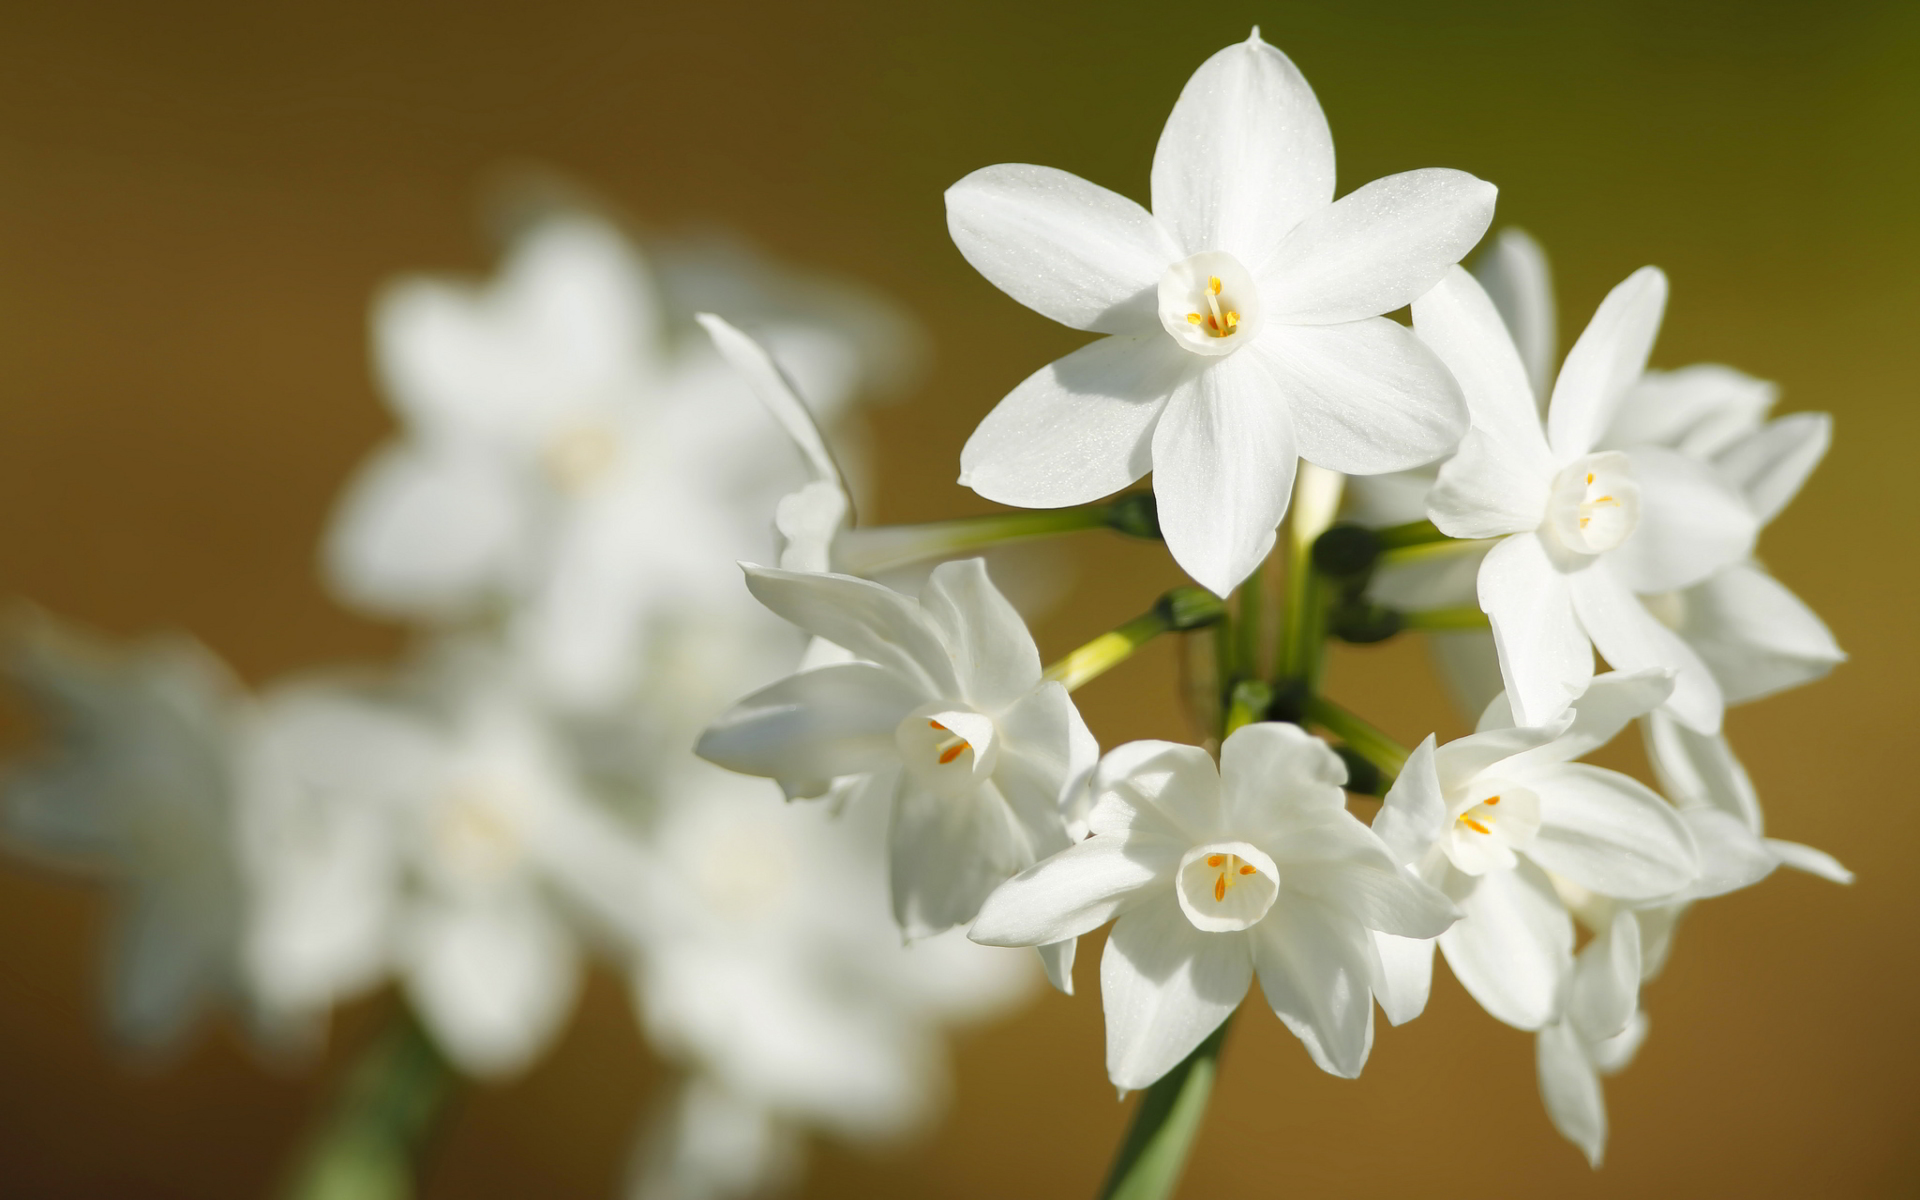 Awesome Narcissus Flower Wallpaper Desktop